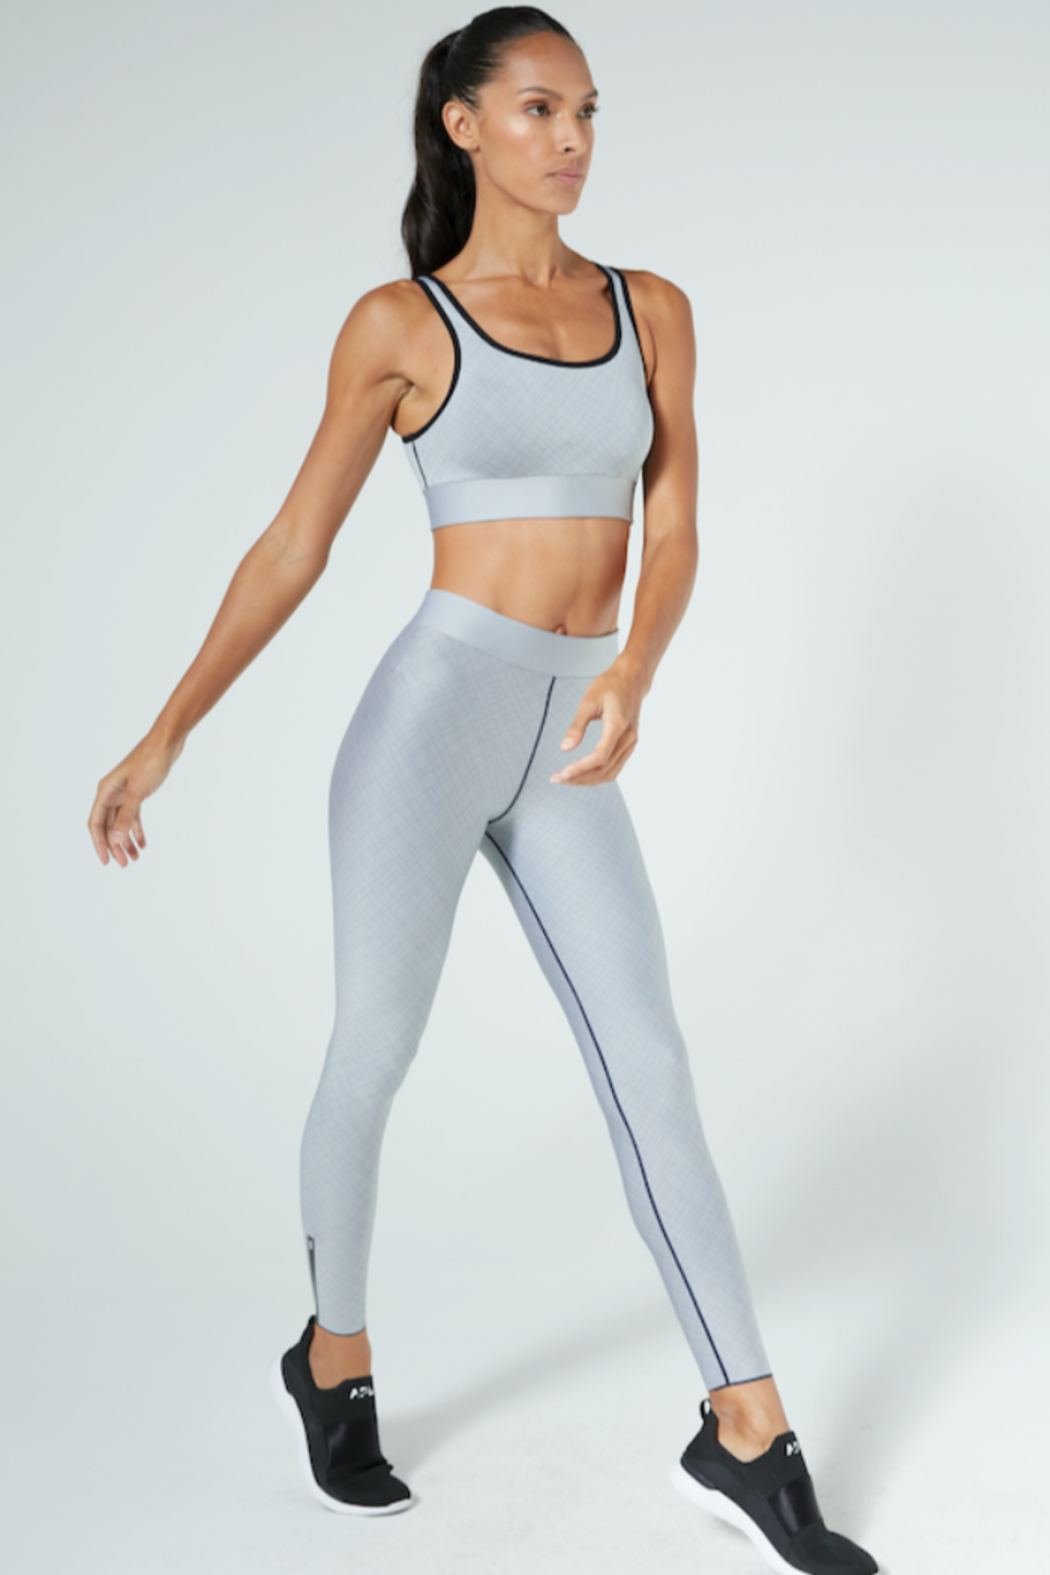 cor designed by ultracor Cor designed by Ultracor slate grey legging with black pipping - Main Image